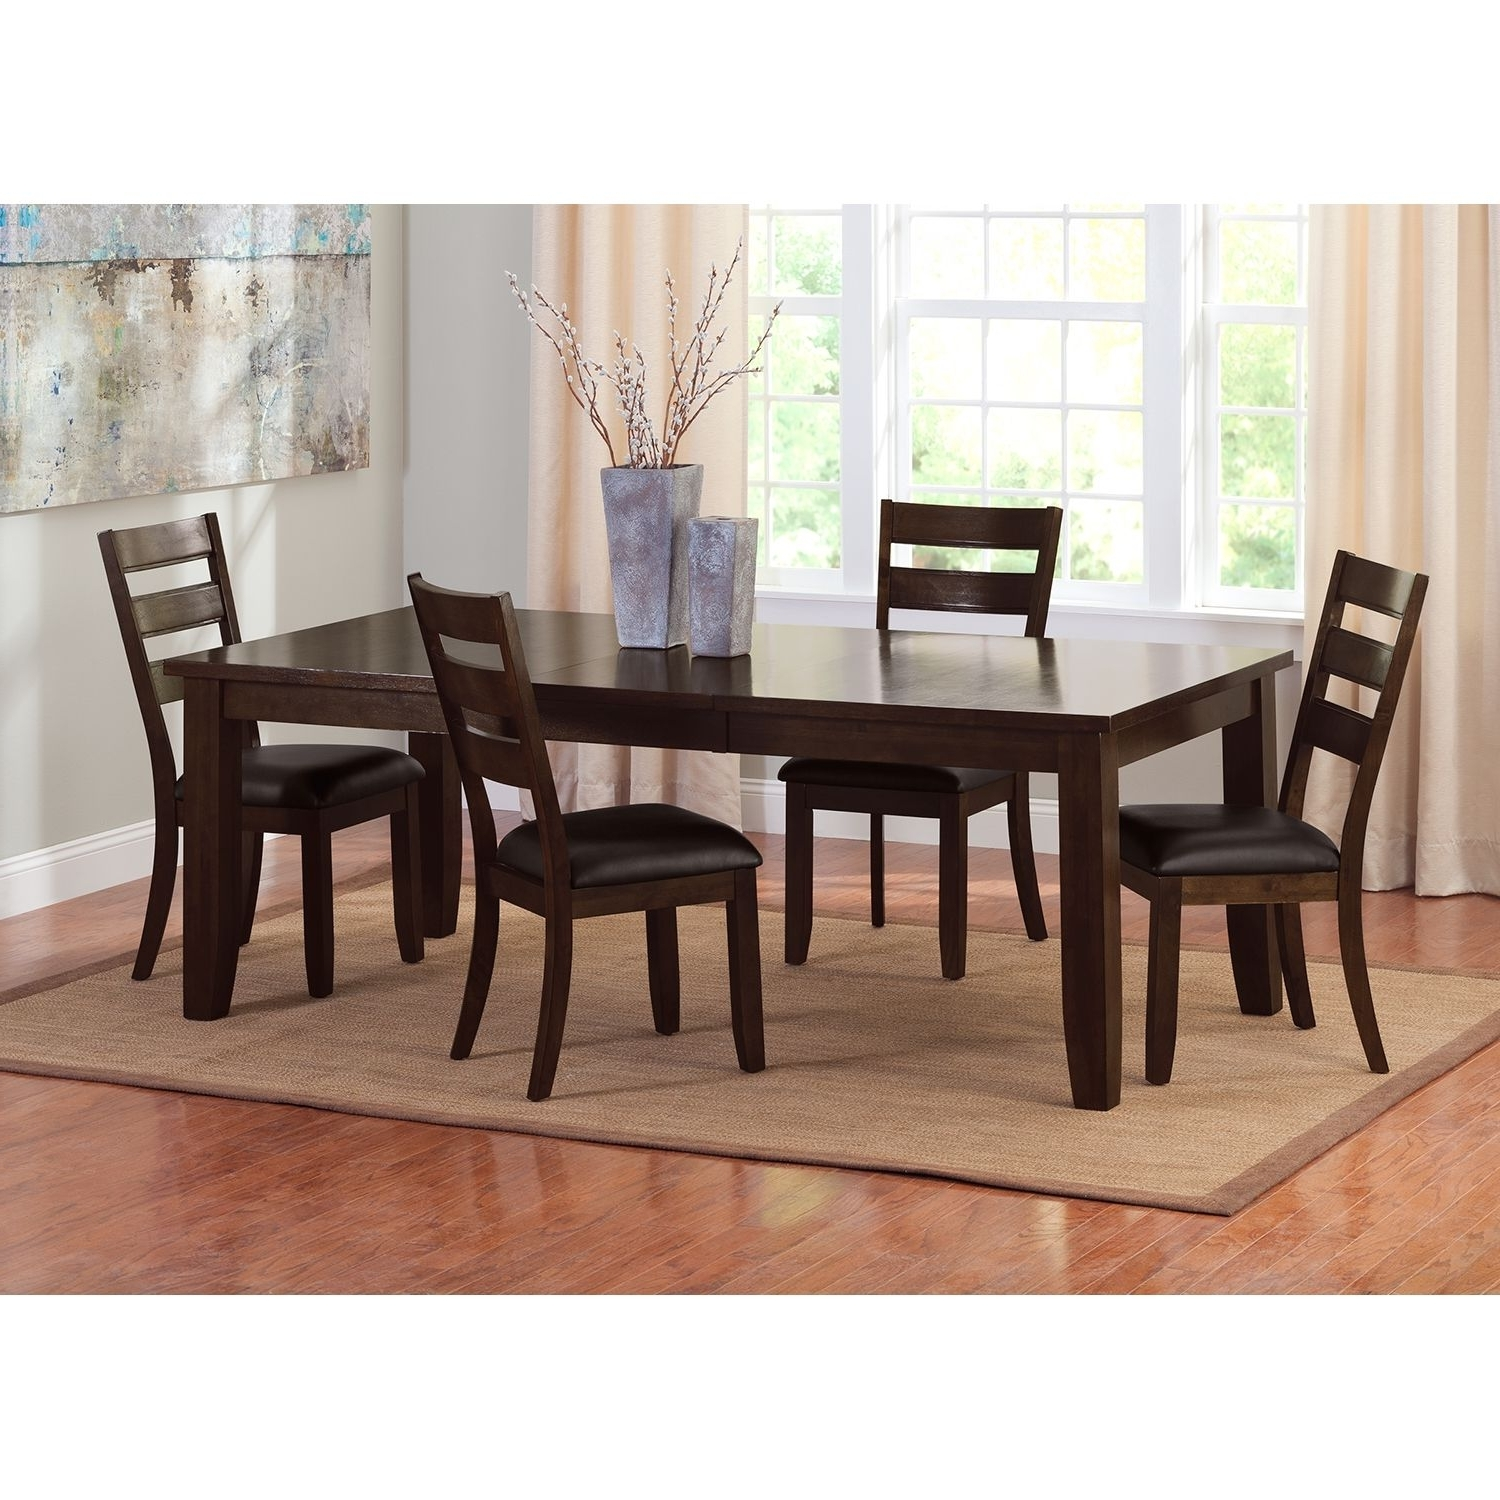 City Furniture Pertaining To Well Known Cora 7 Piece Dining Sets (View 9 of 25)